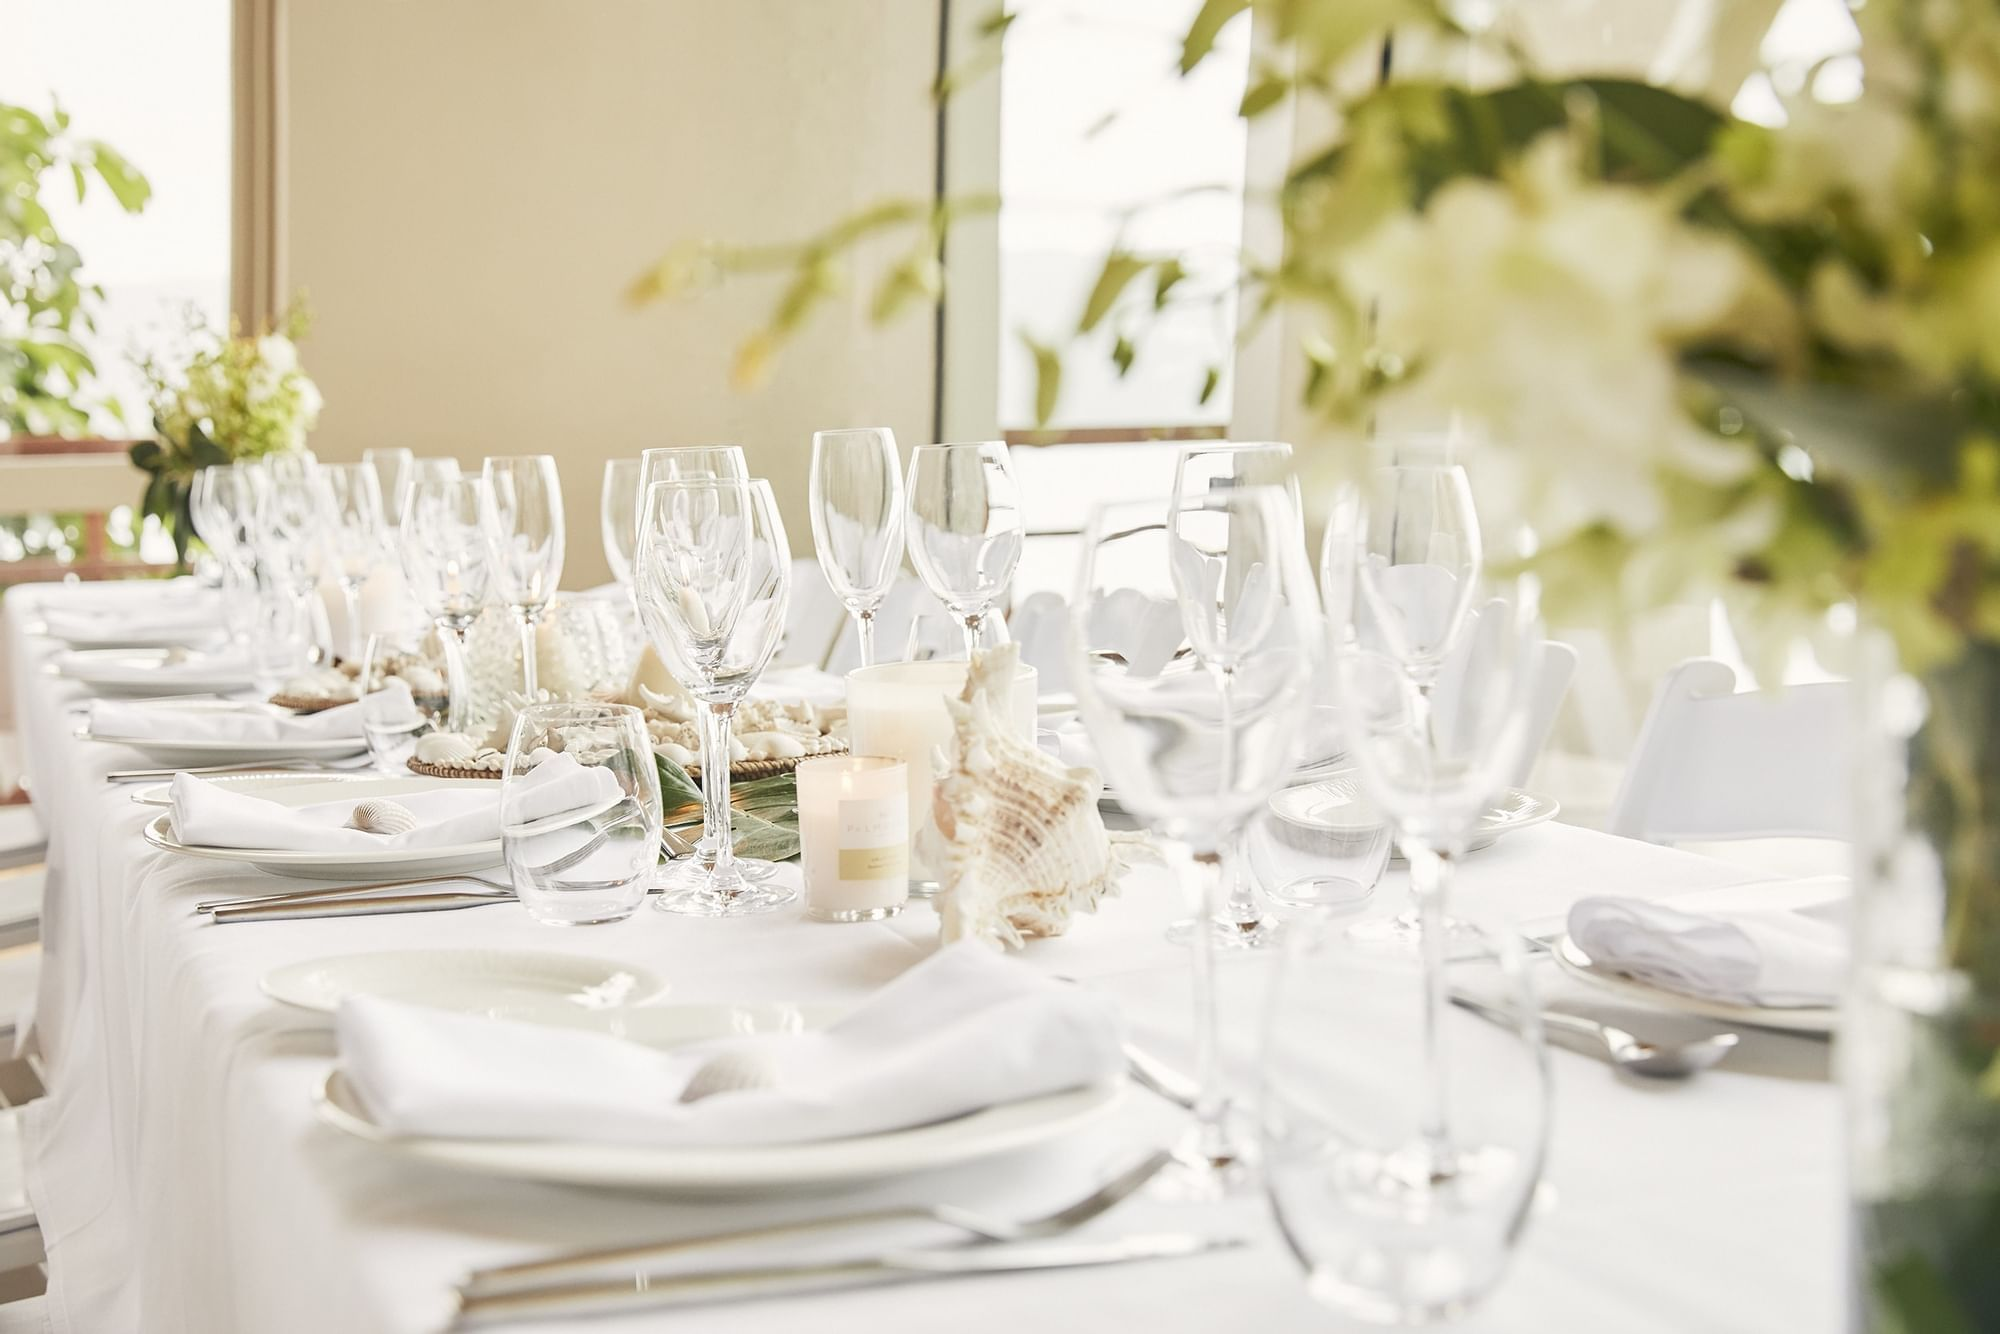 Table settings for wedding at Daydream Island Resort